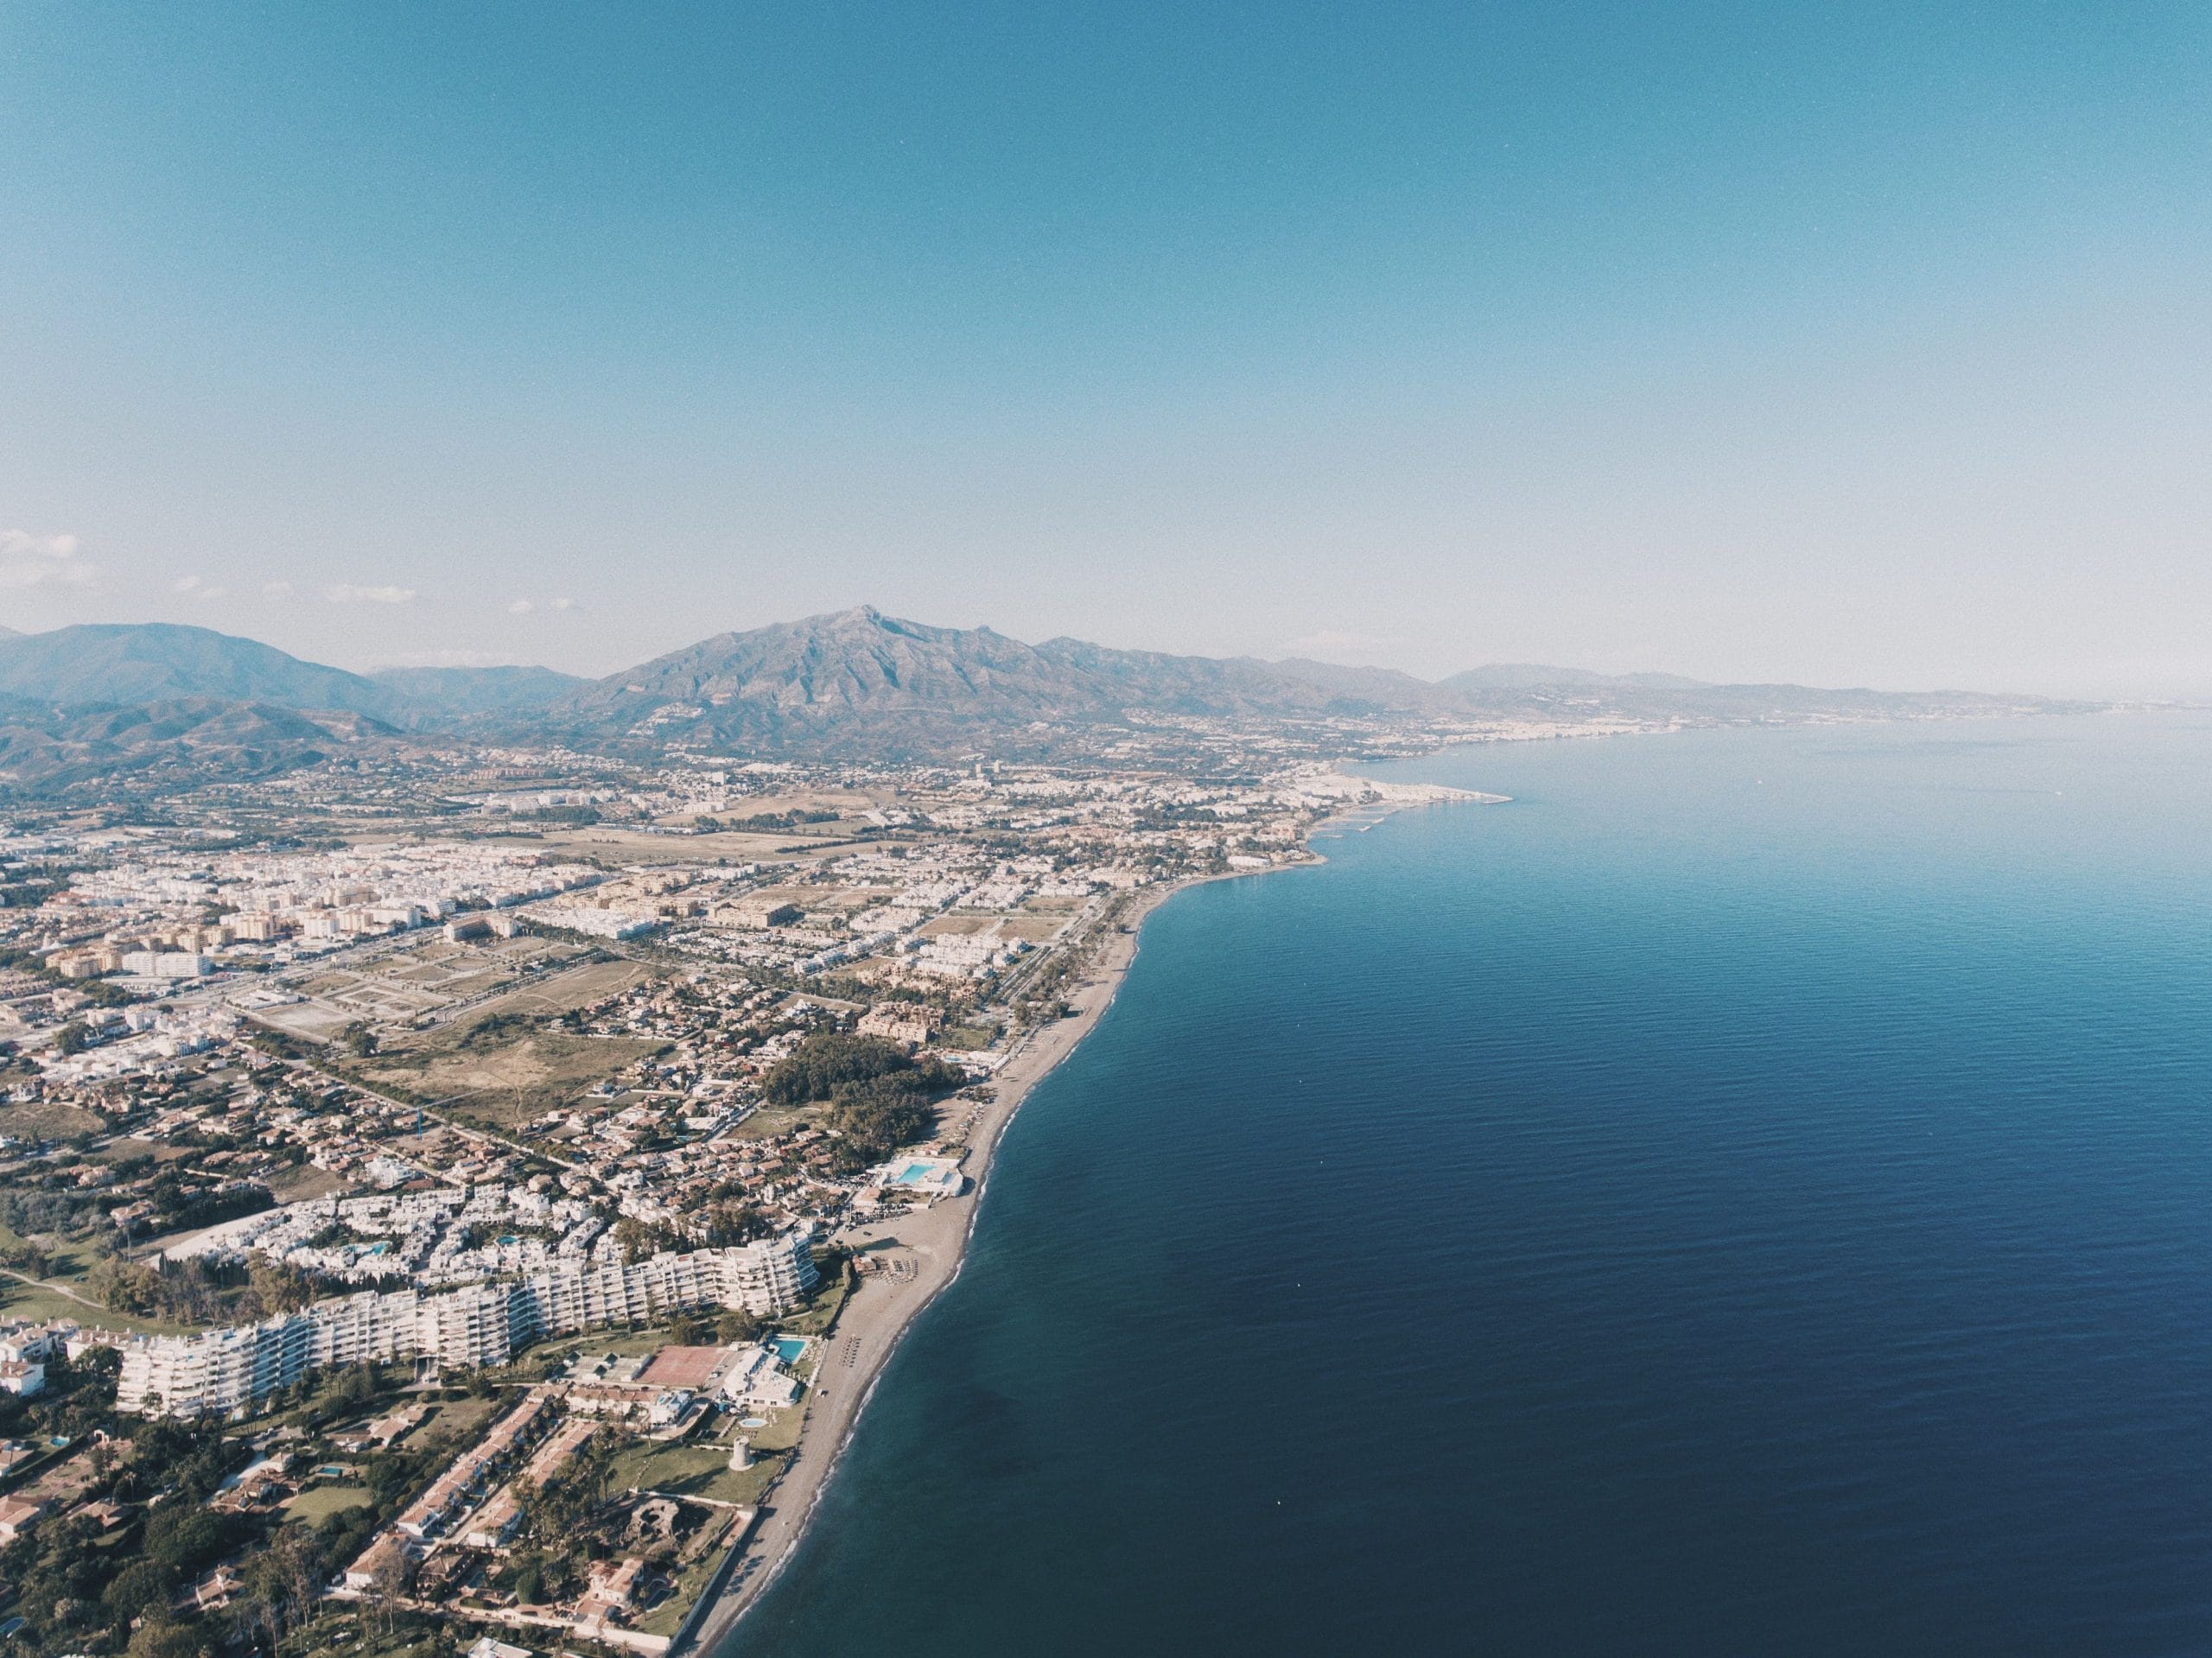 Climate and beaches in Marbella